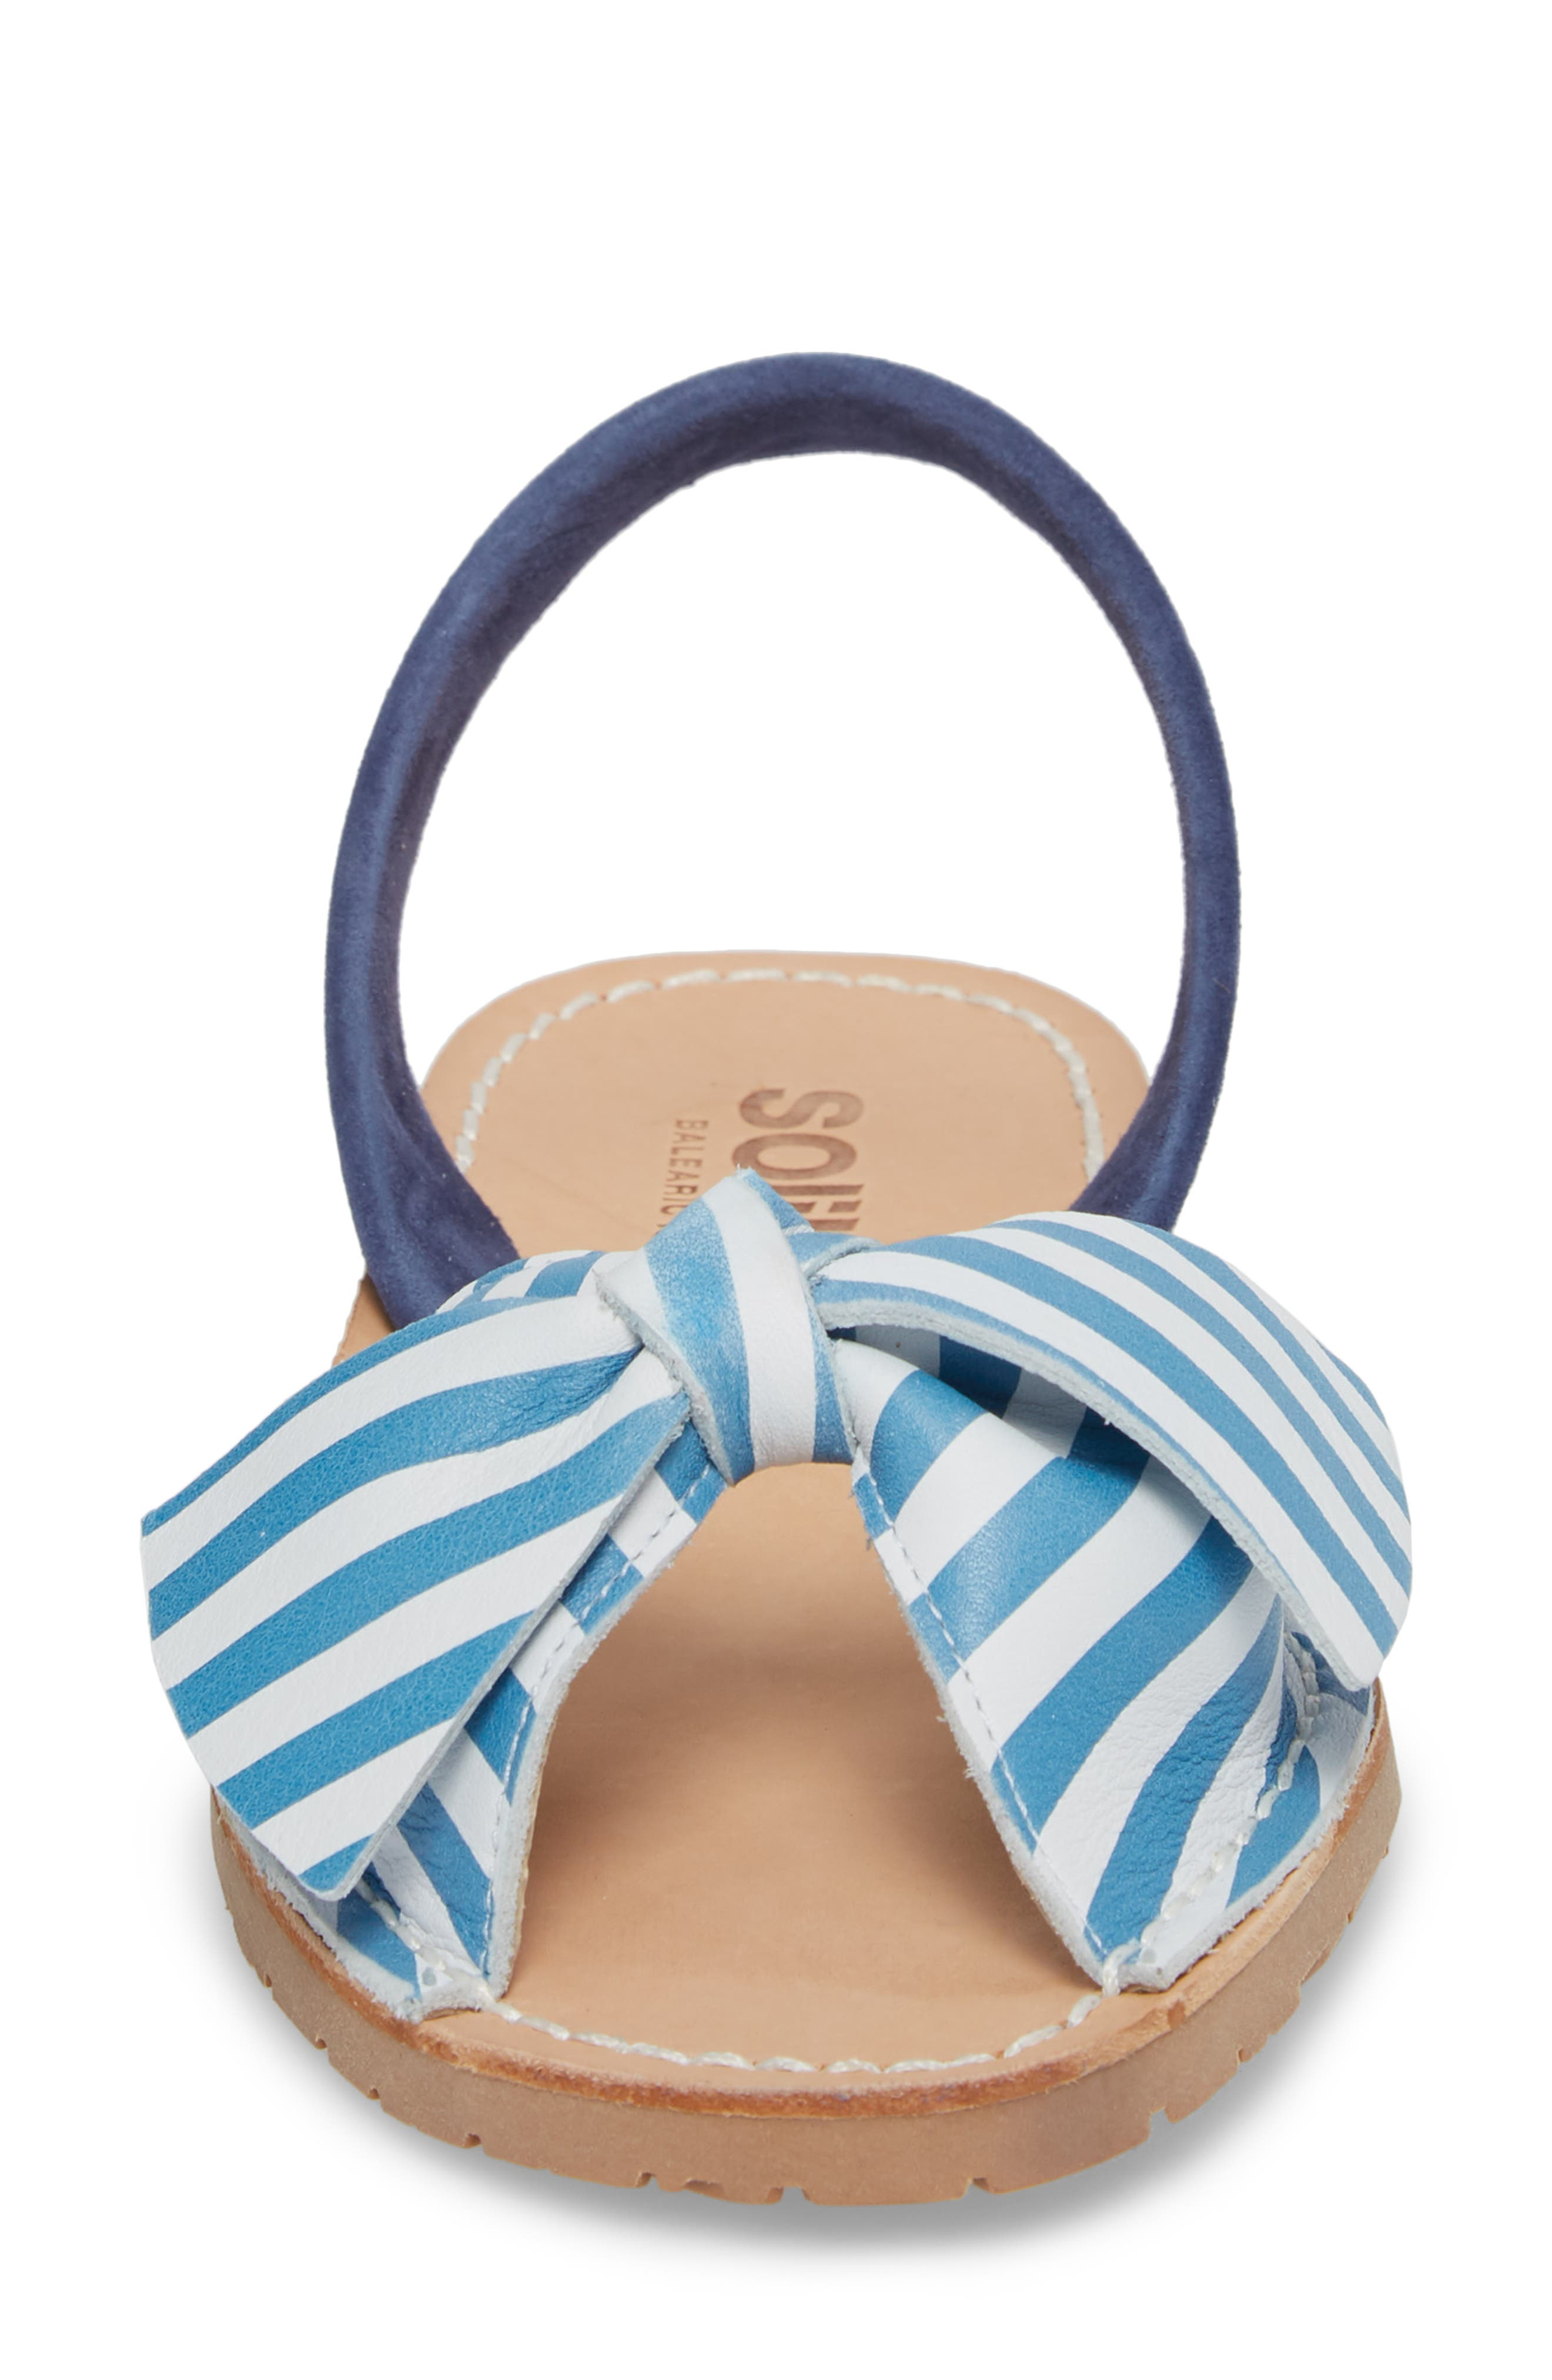 Bow Sandal,                             Alternate thumbnail 4, color,                             BLUE AND WHITE